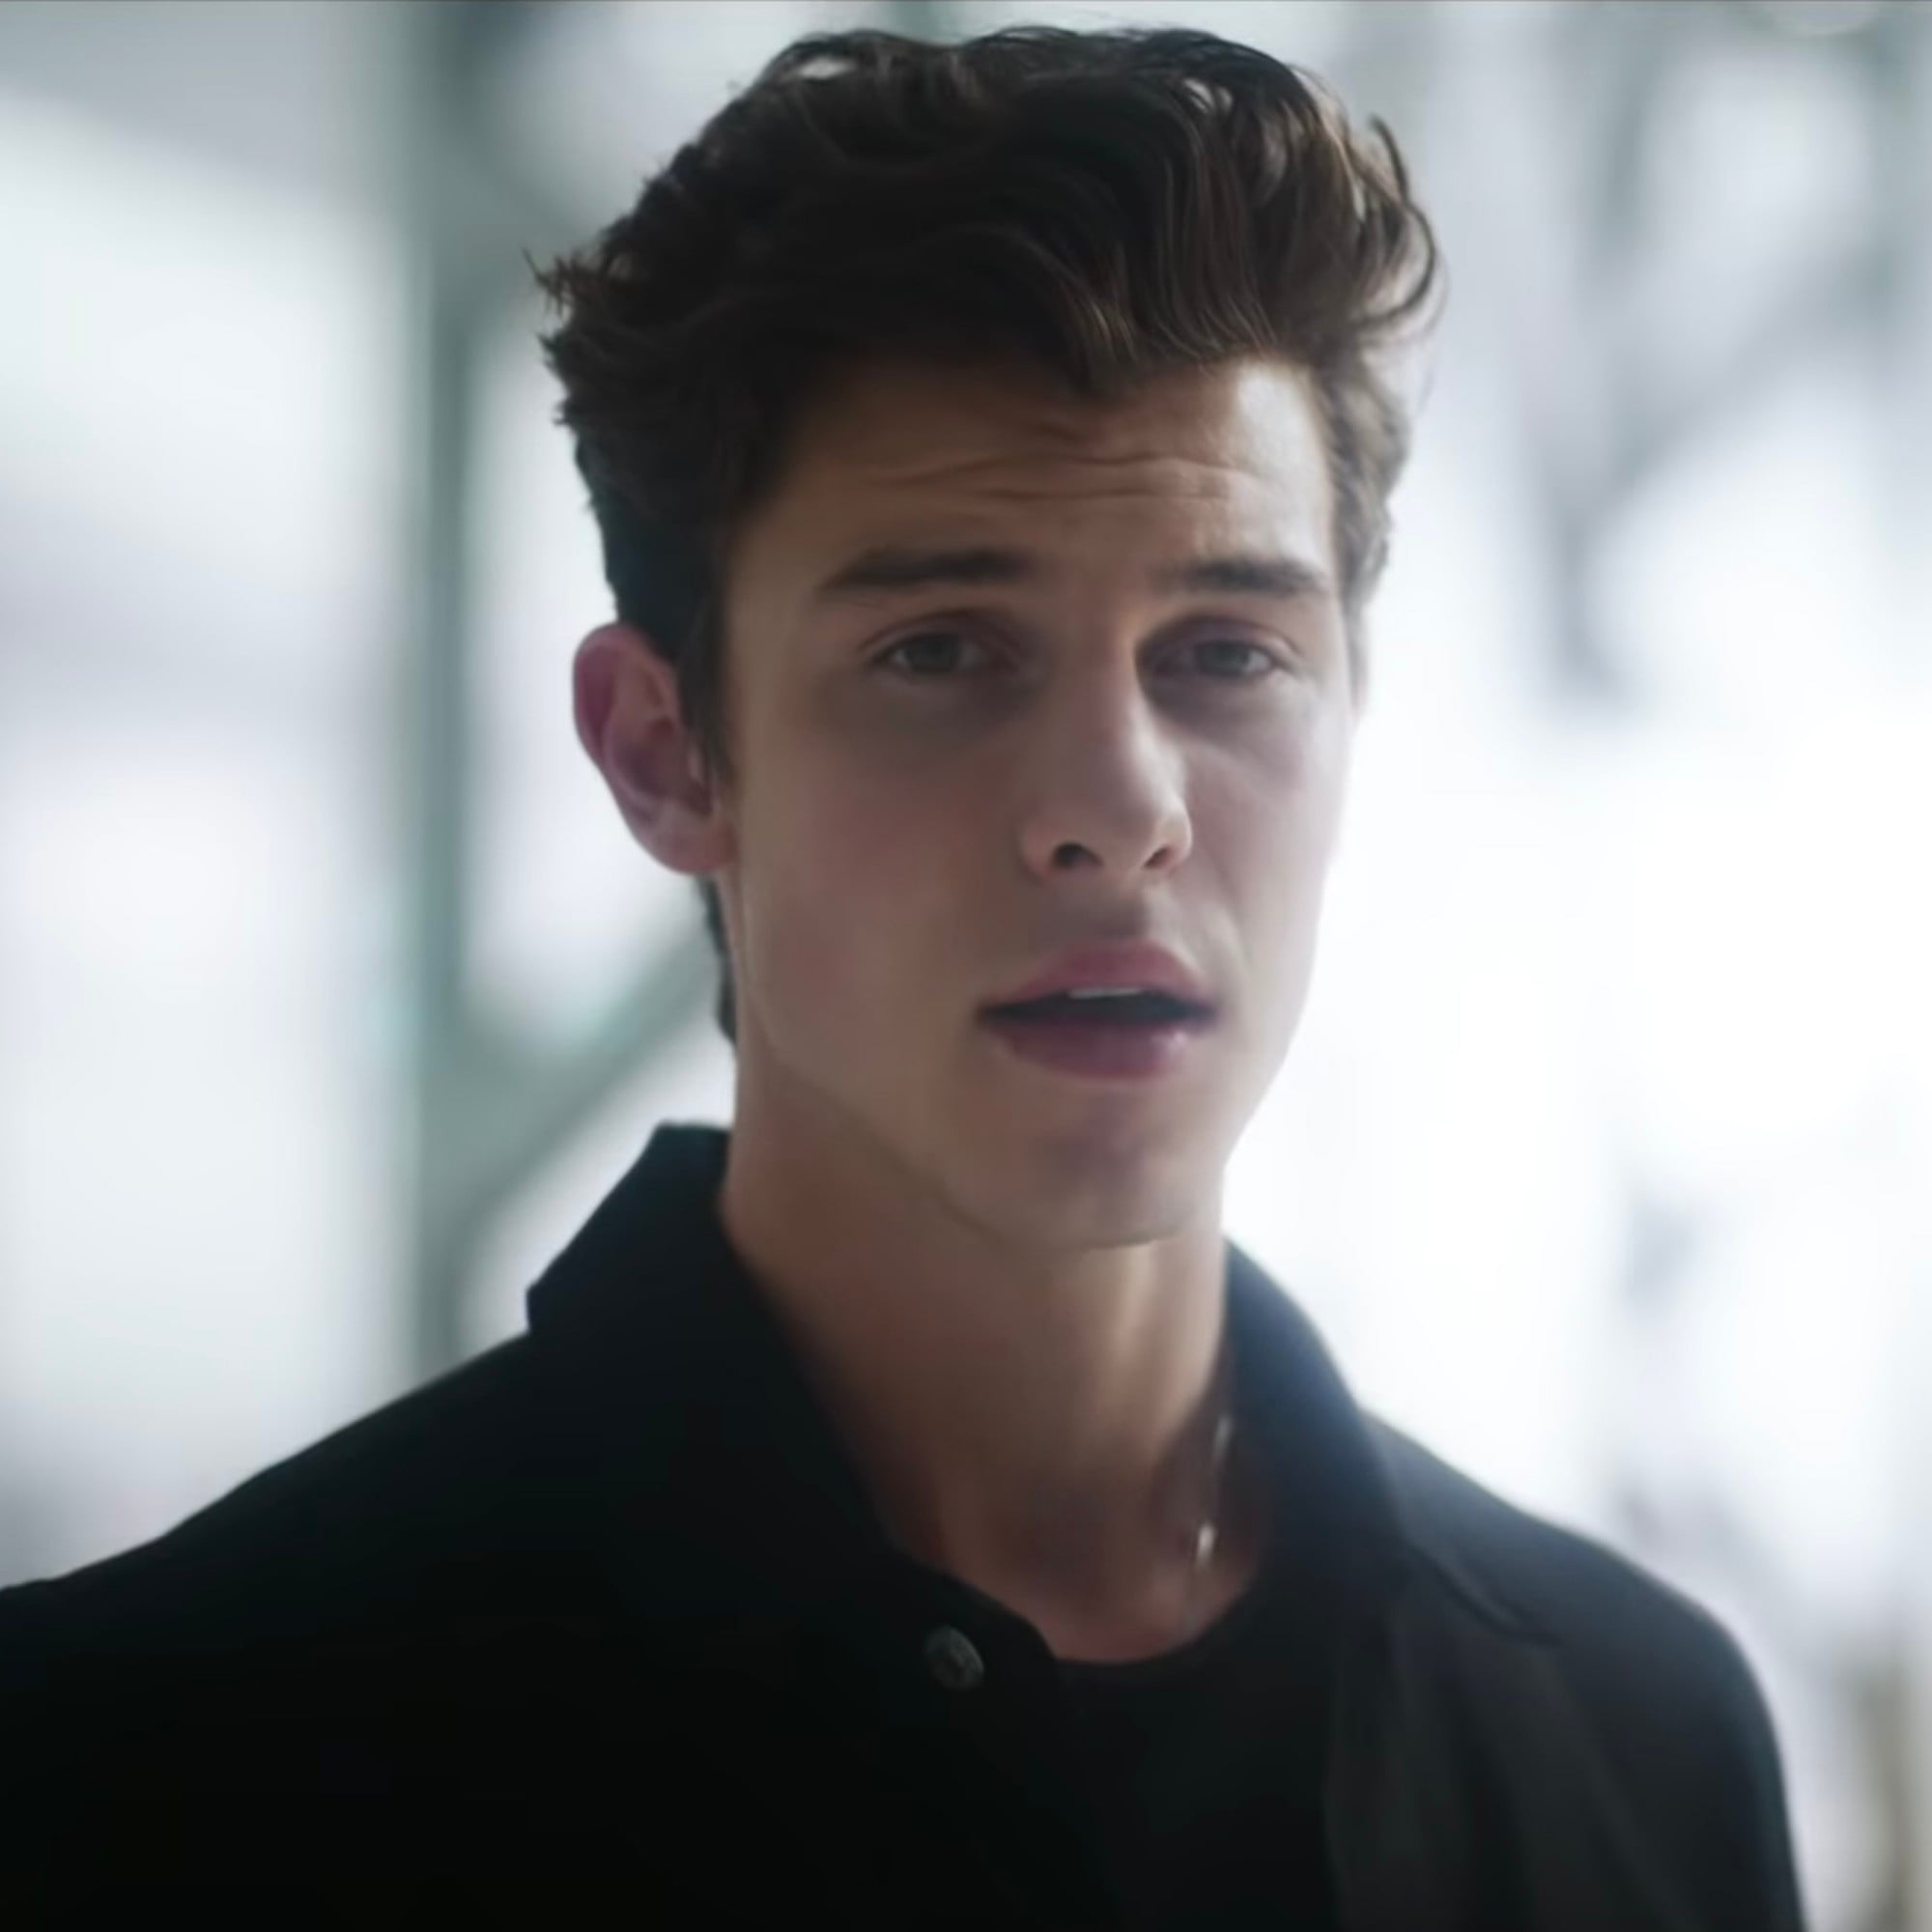 Shawn mendes new music video